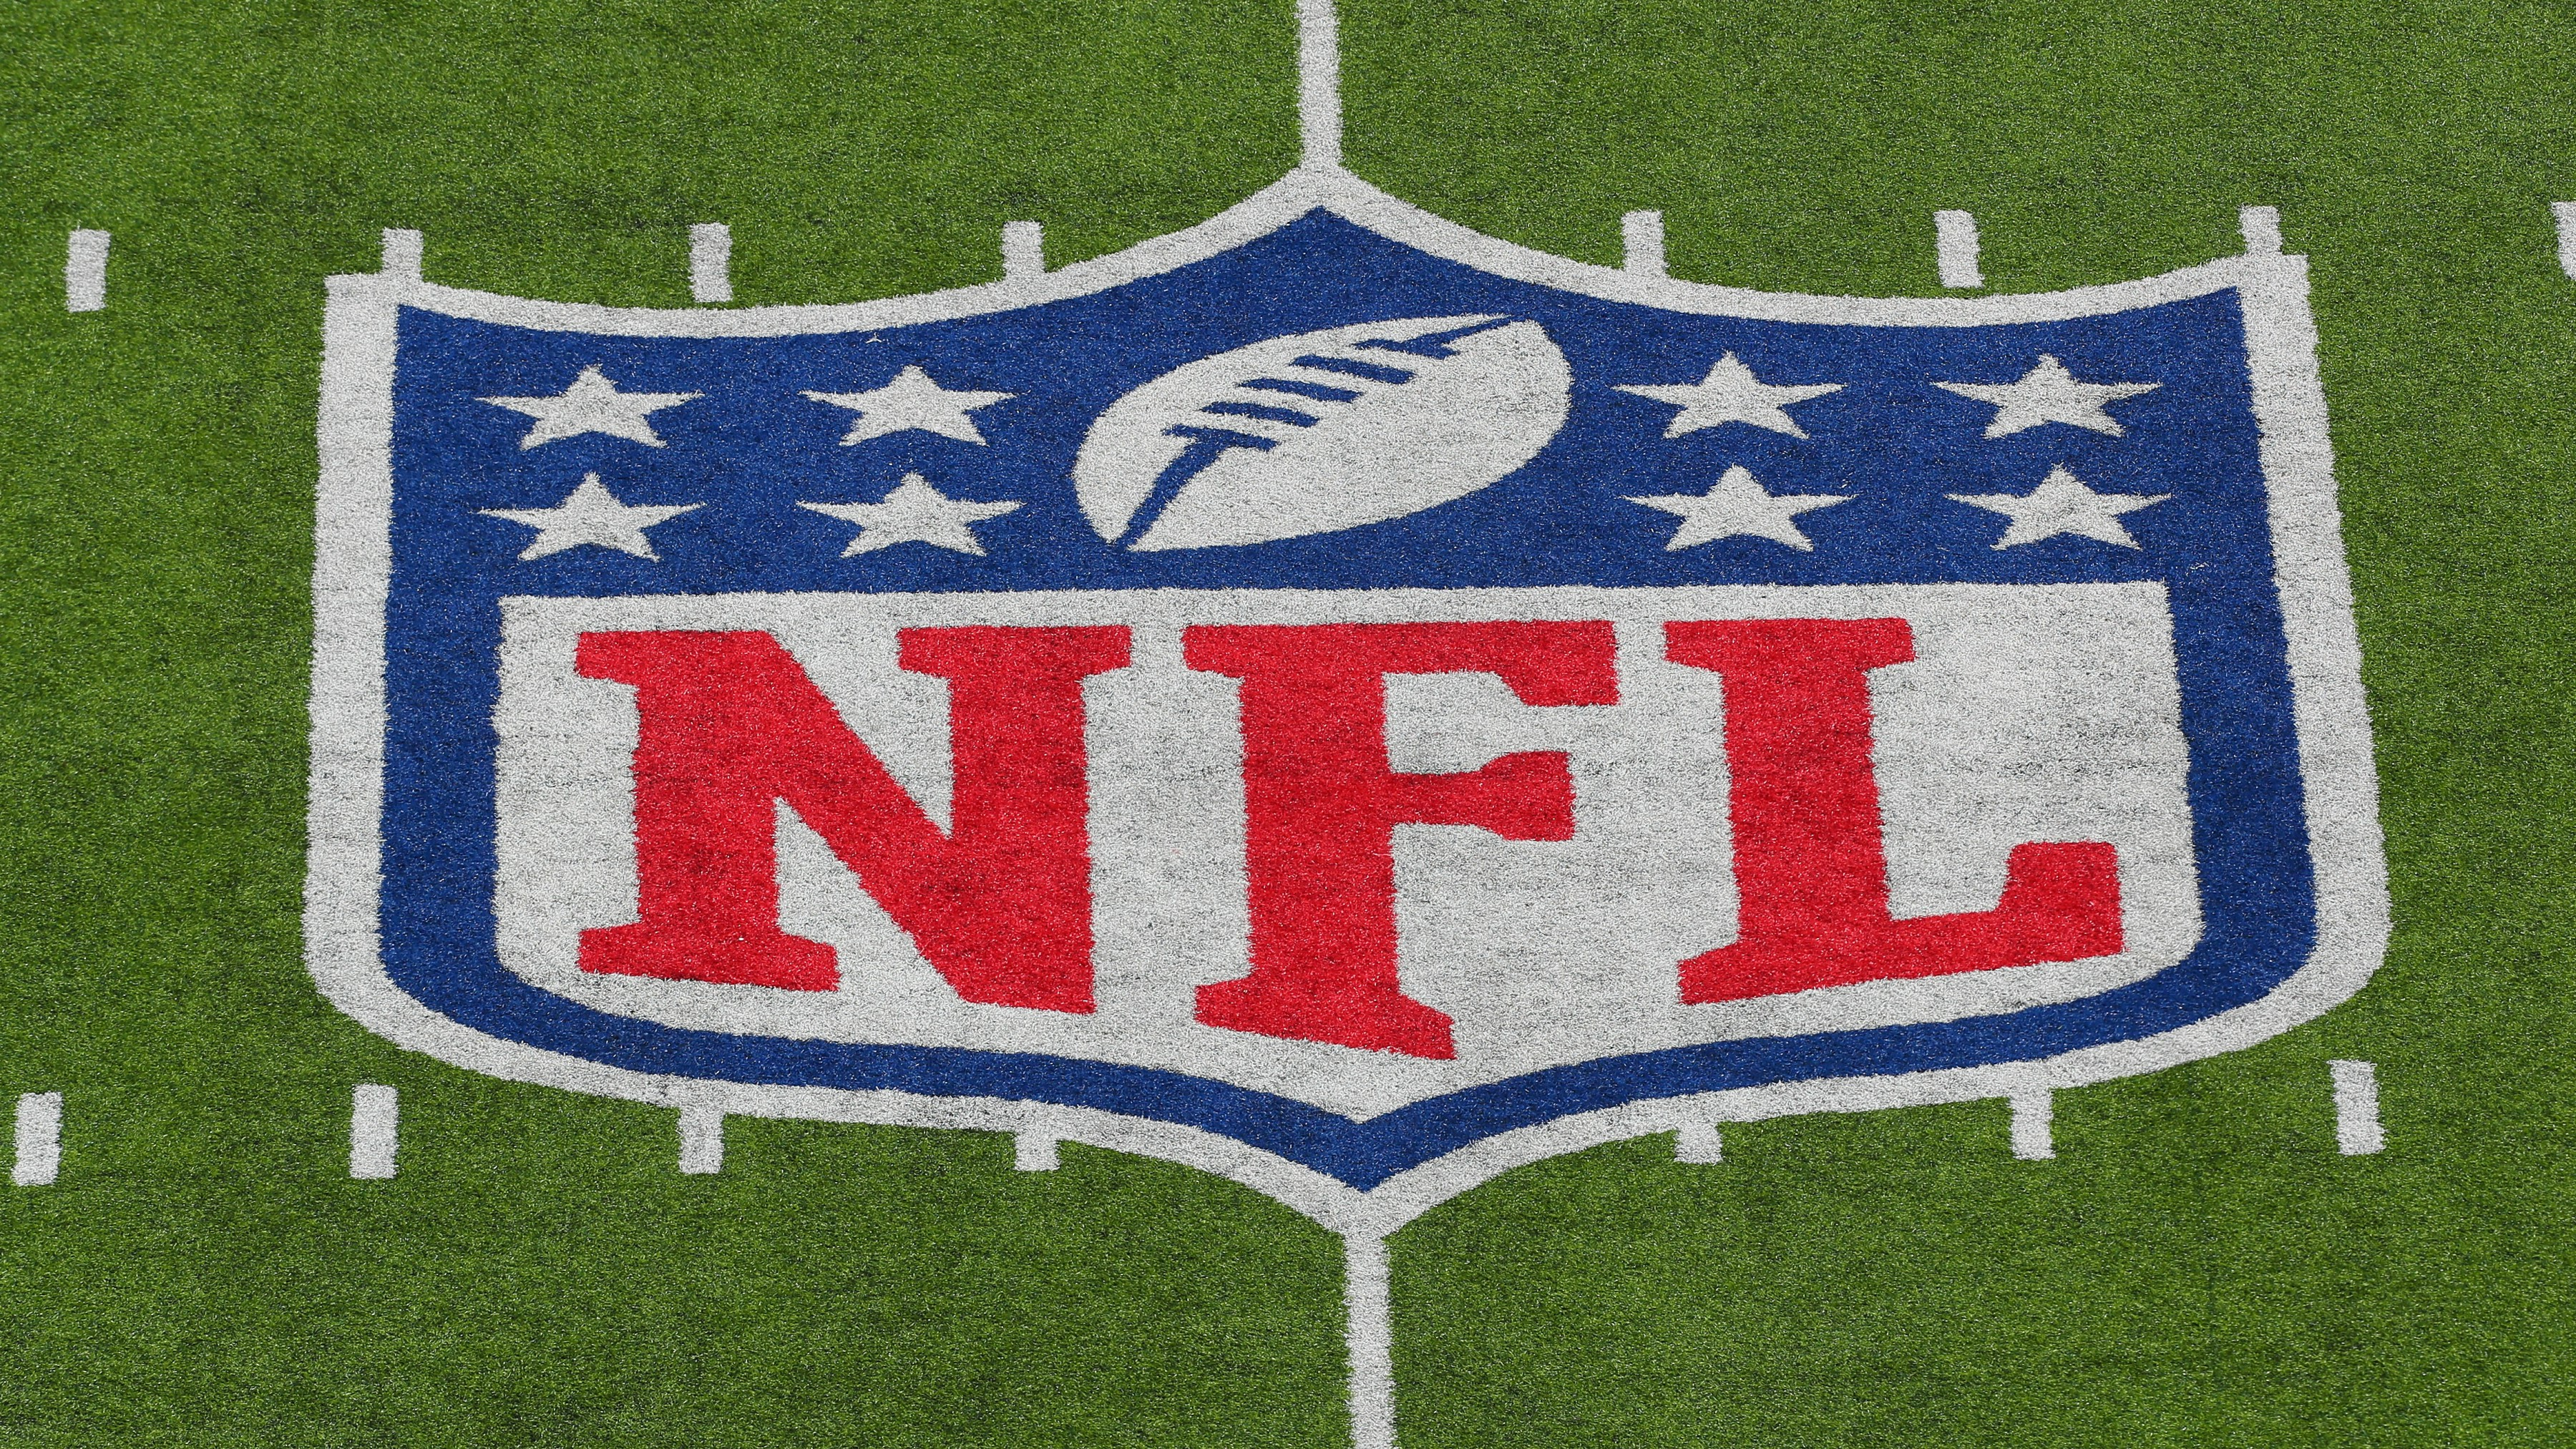 Nfl Tv Ratings Decline Roughly 10 From Last Season Si